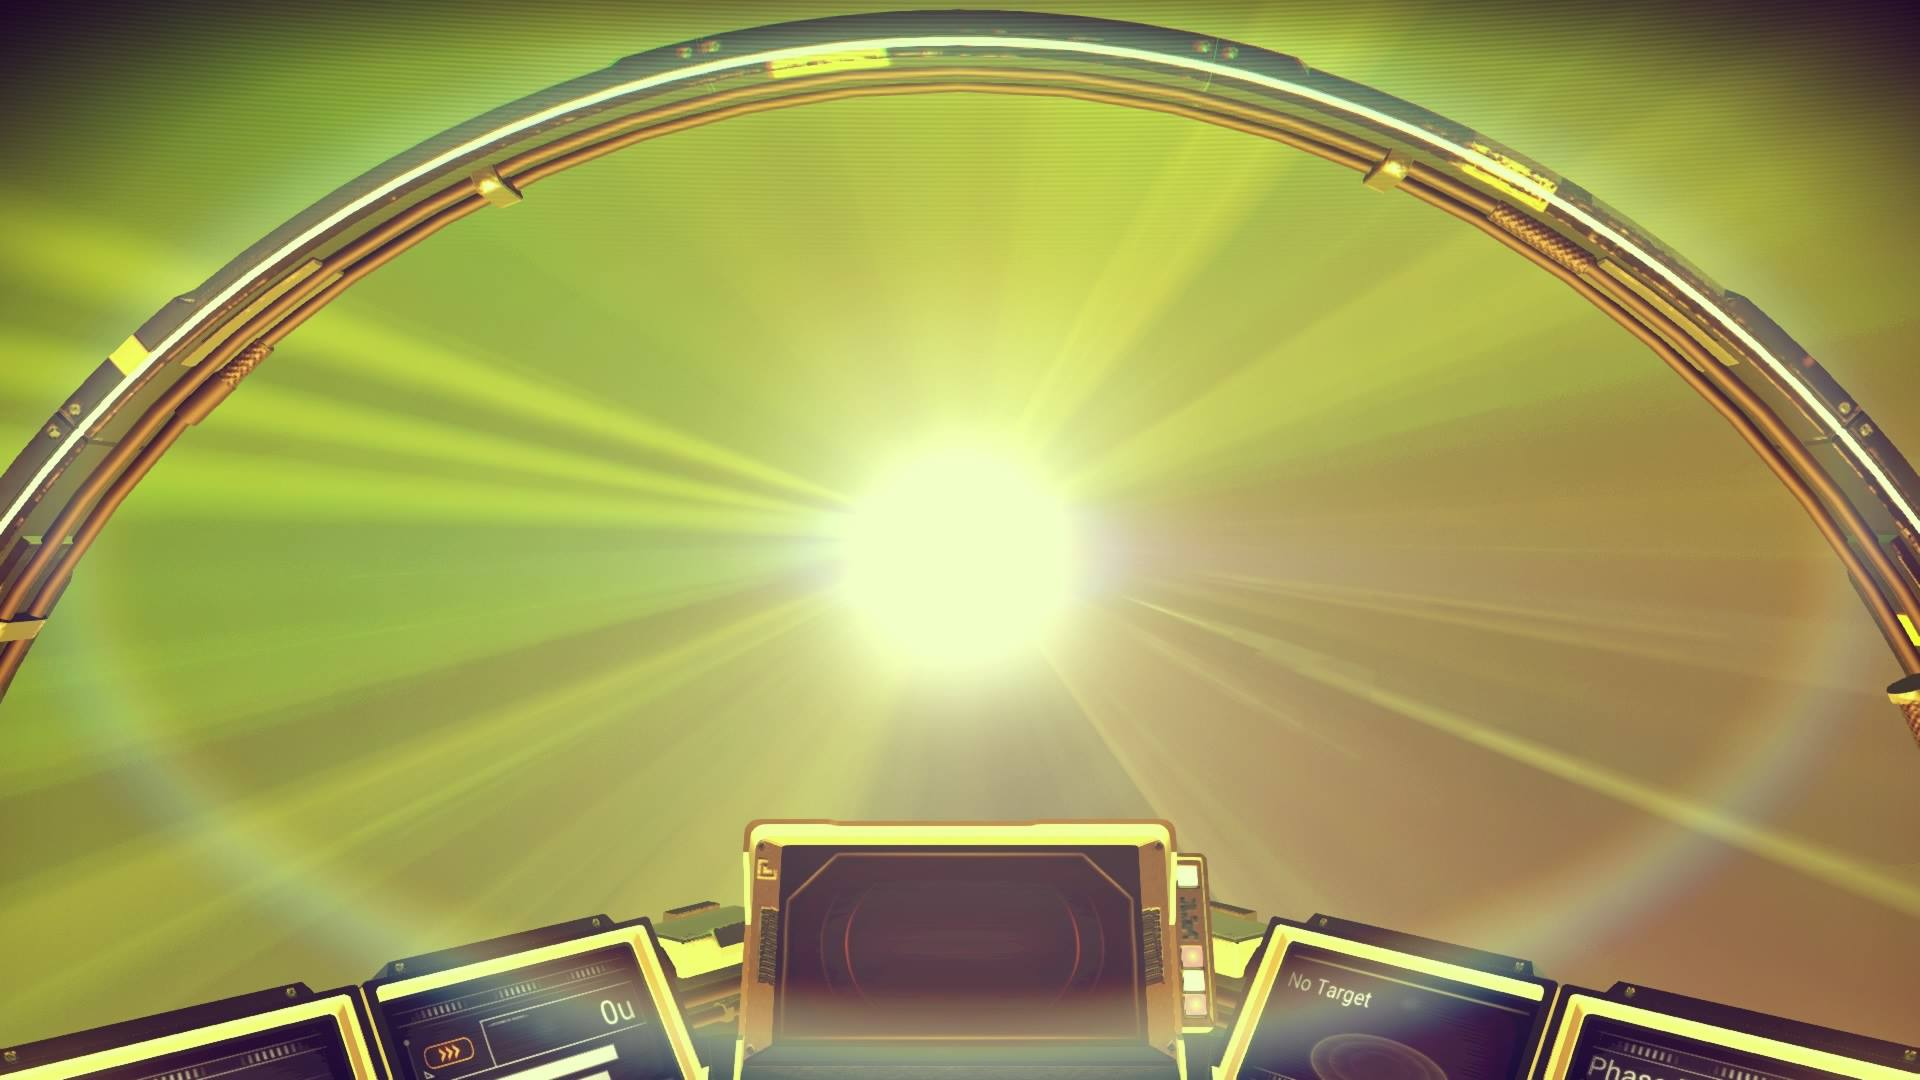 No Man's Sky: How to get lots of units fast